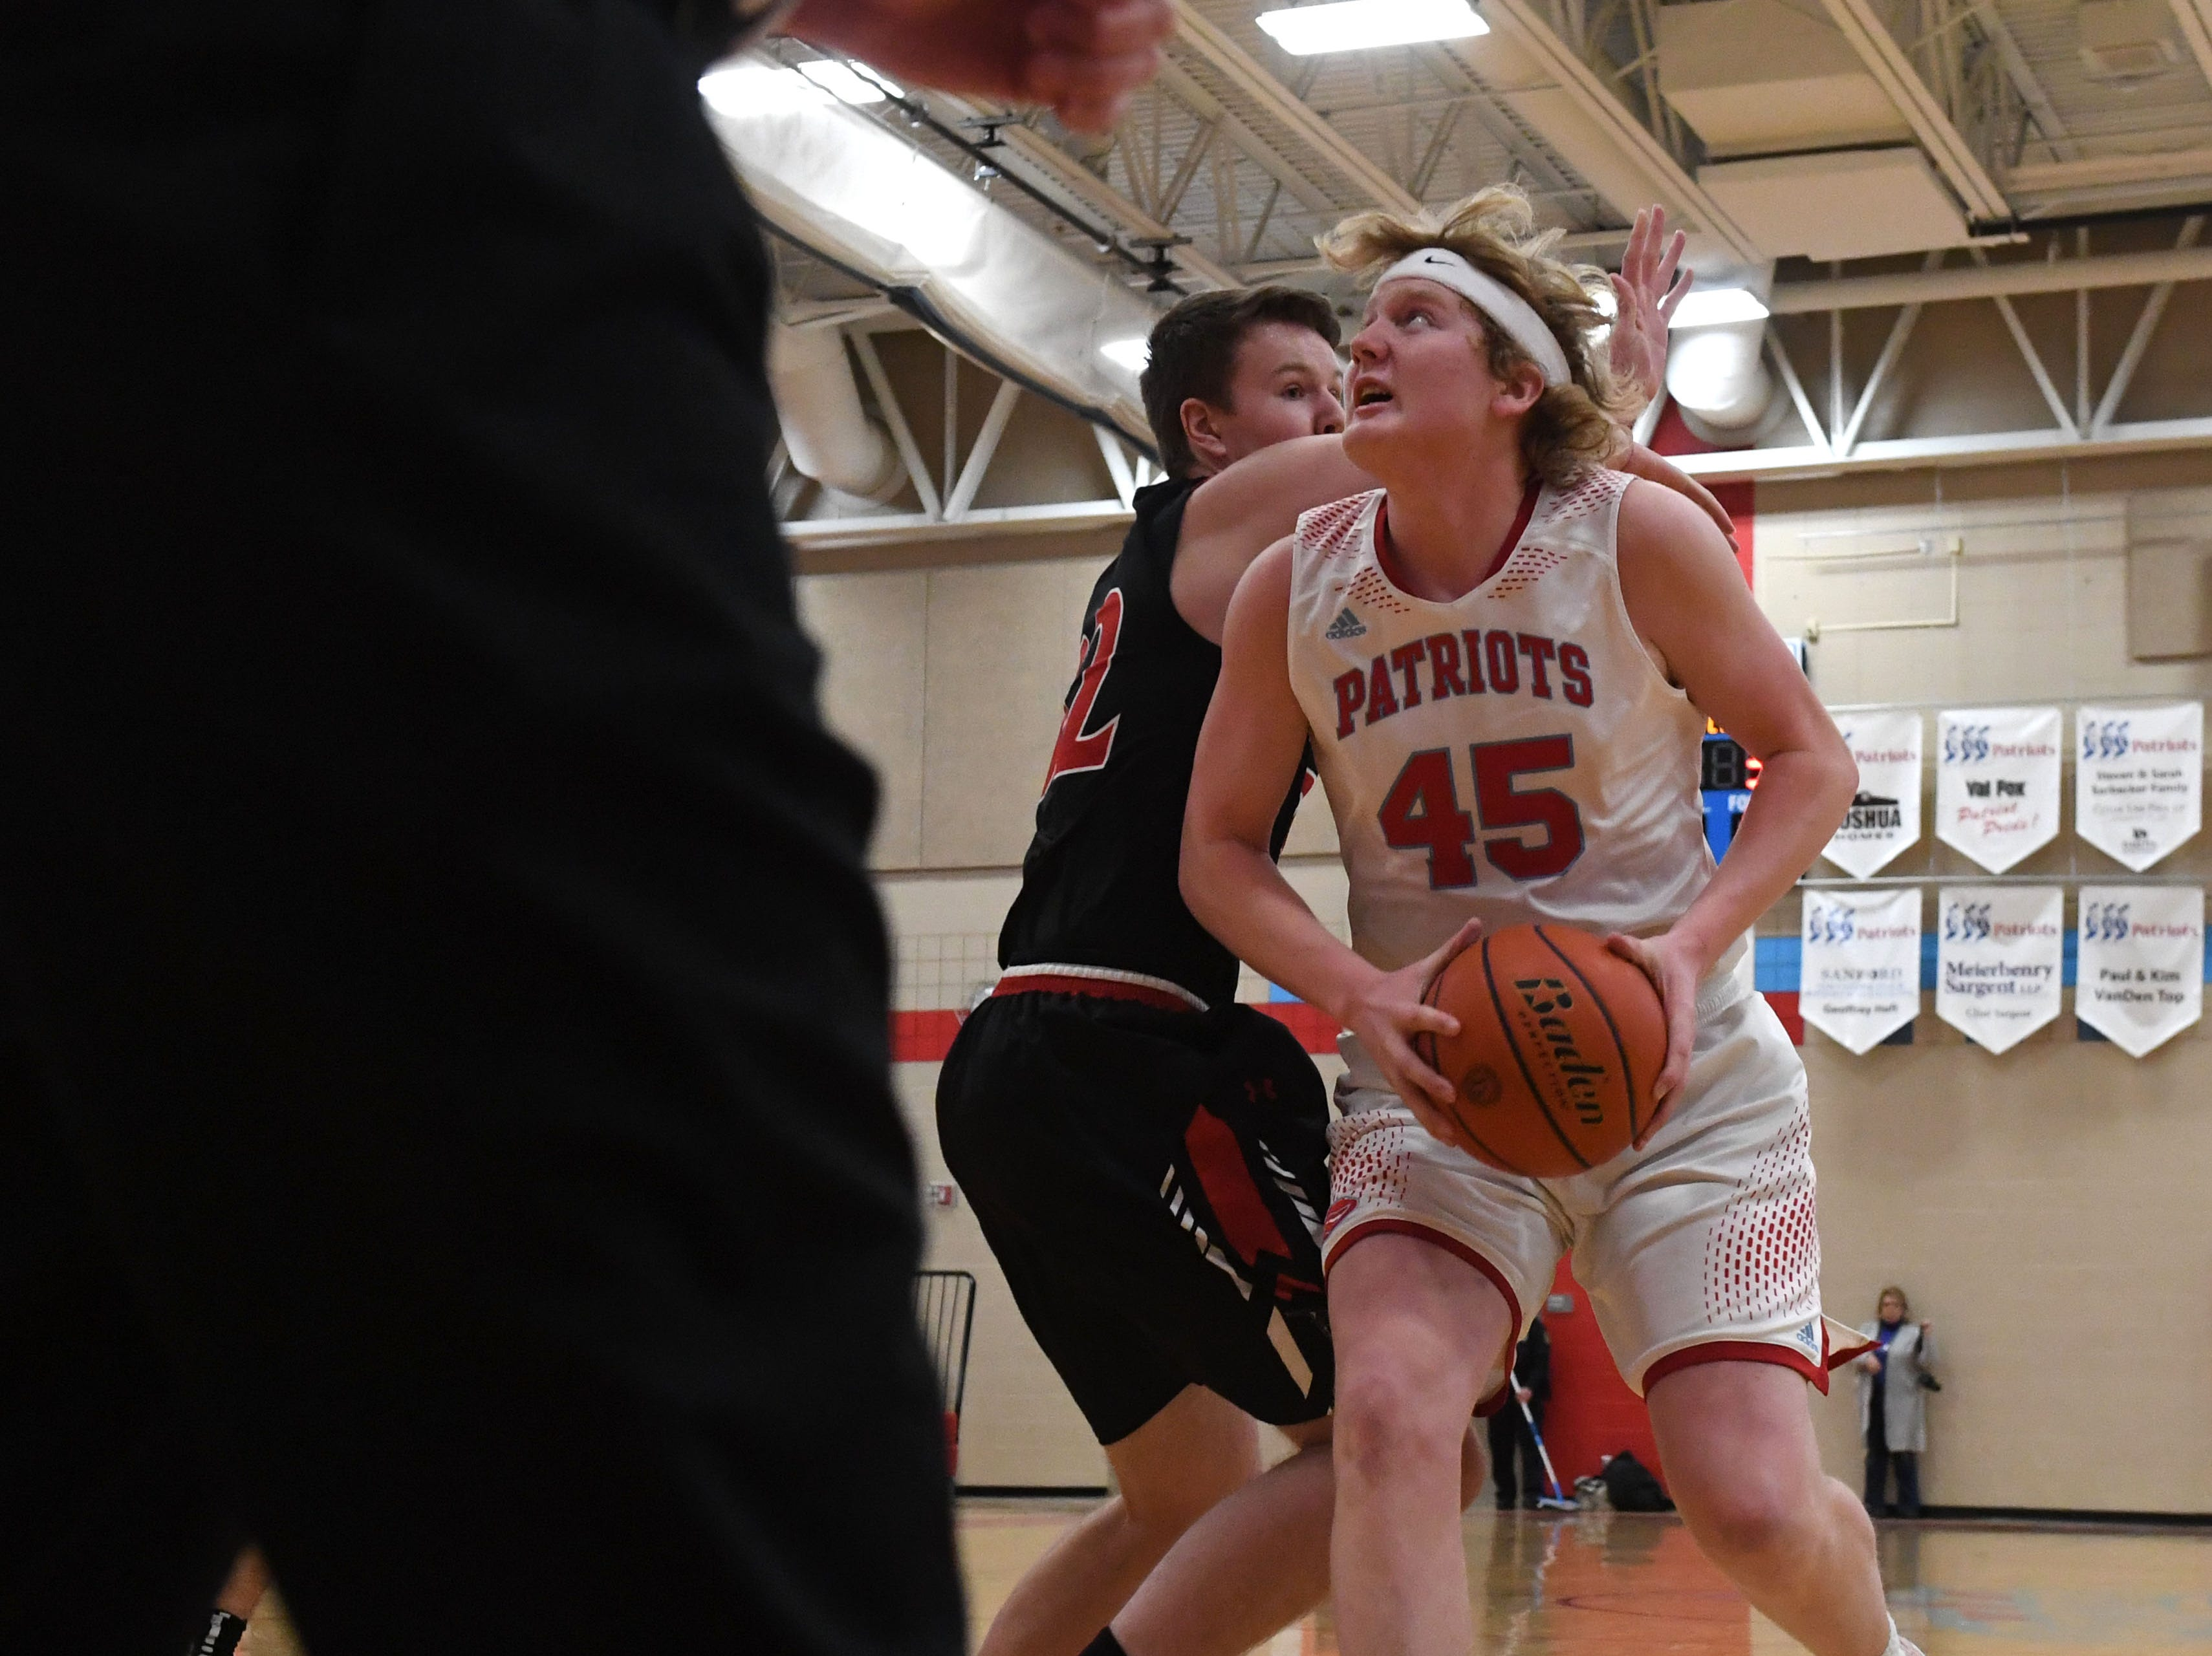 Lincoln's Nate Brecht (45) dribbles the ball past Brandon Valley's Alex Tietjen (32) during a game in Sioux Falls, S.D., Tuesday, Feb. 5, 2019.